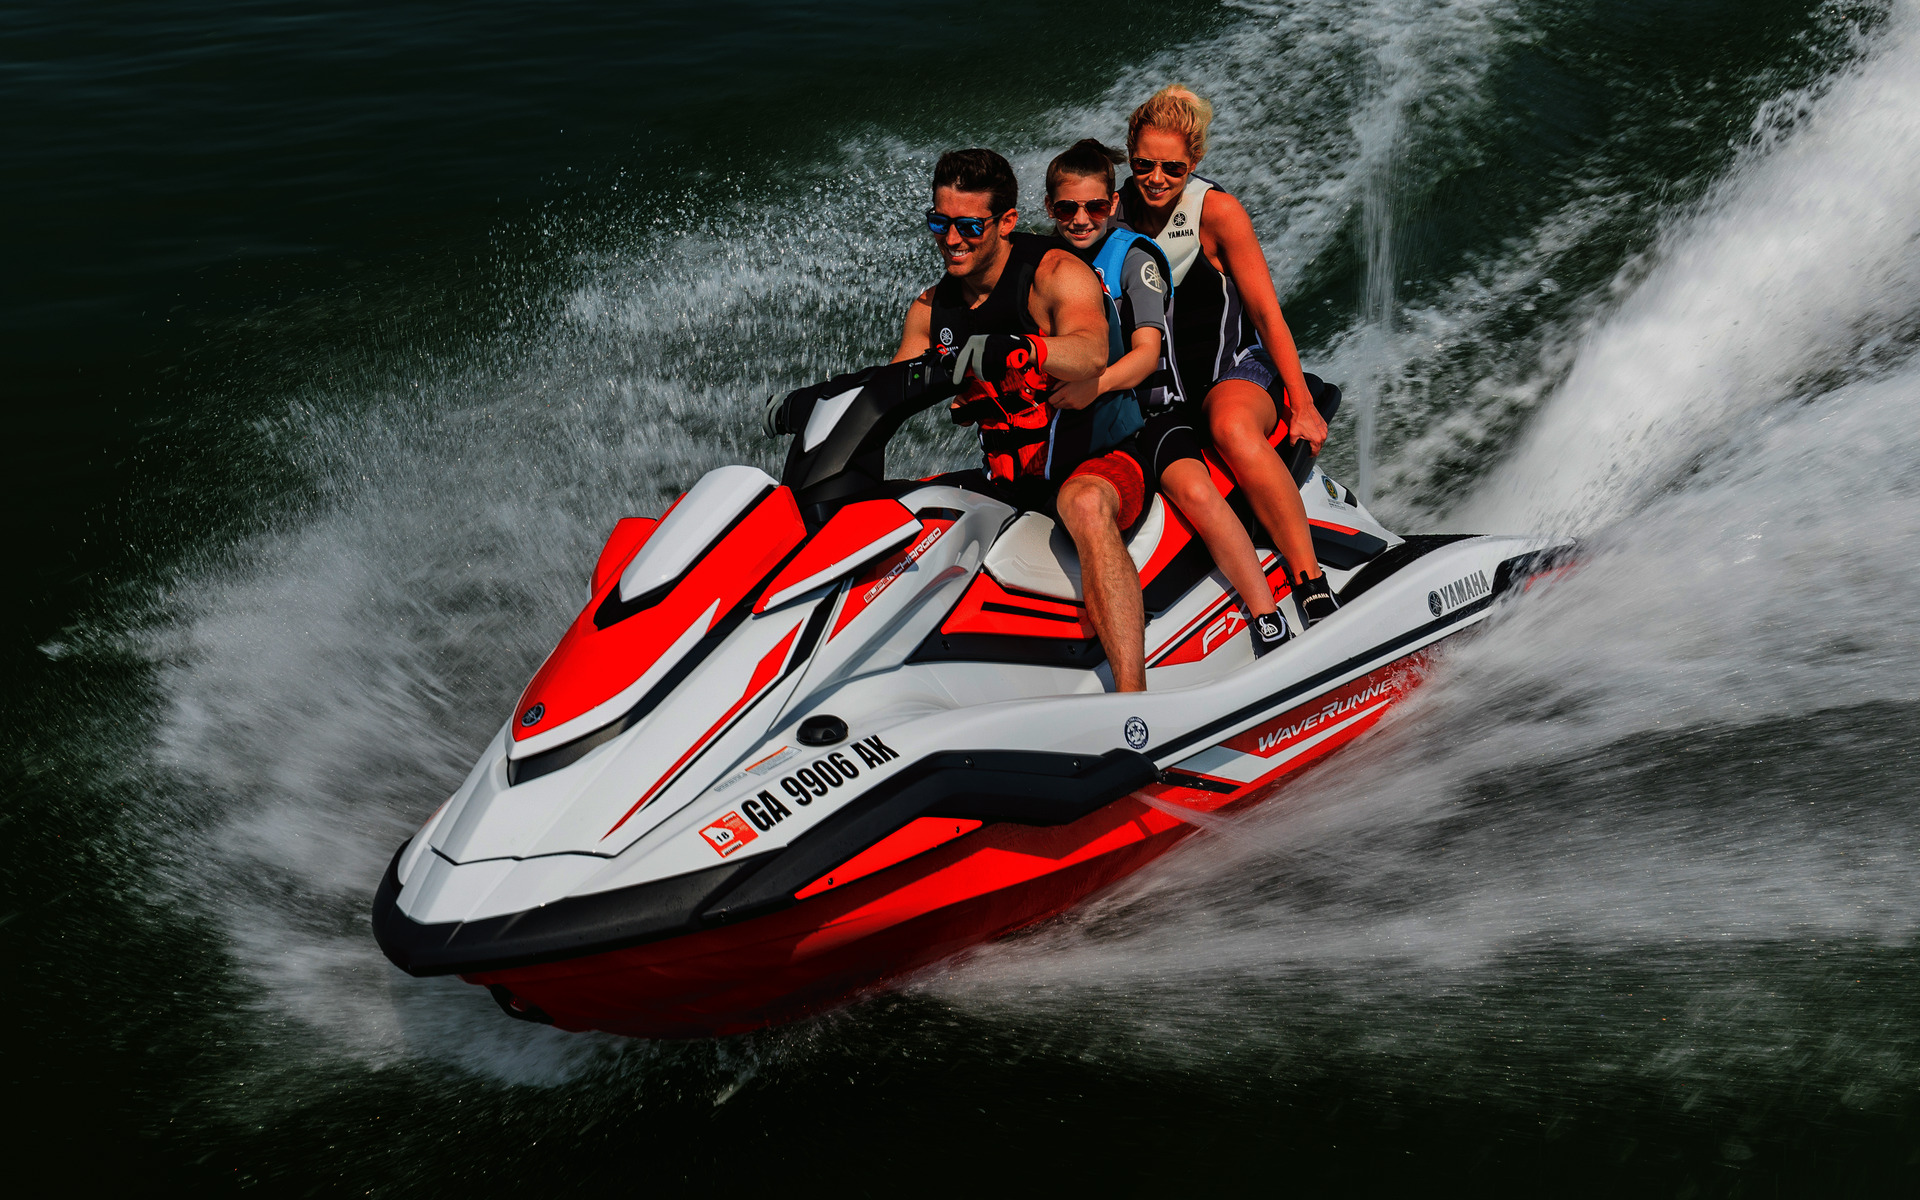 2019 Yamaha Fx Cruiser Svho Full Technical Specifications Price Engine The Boat Guide